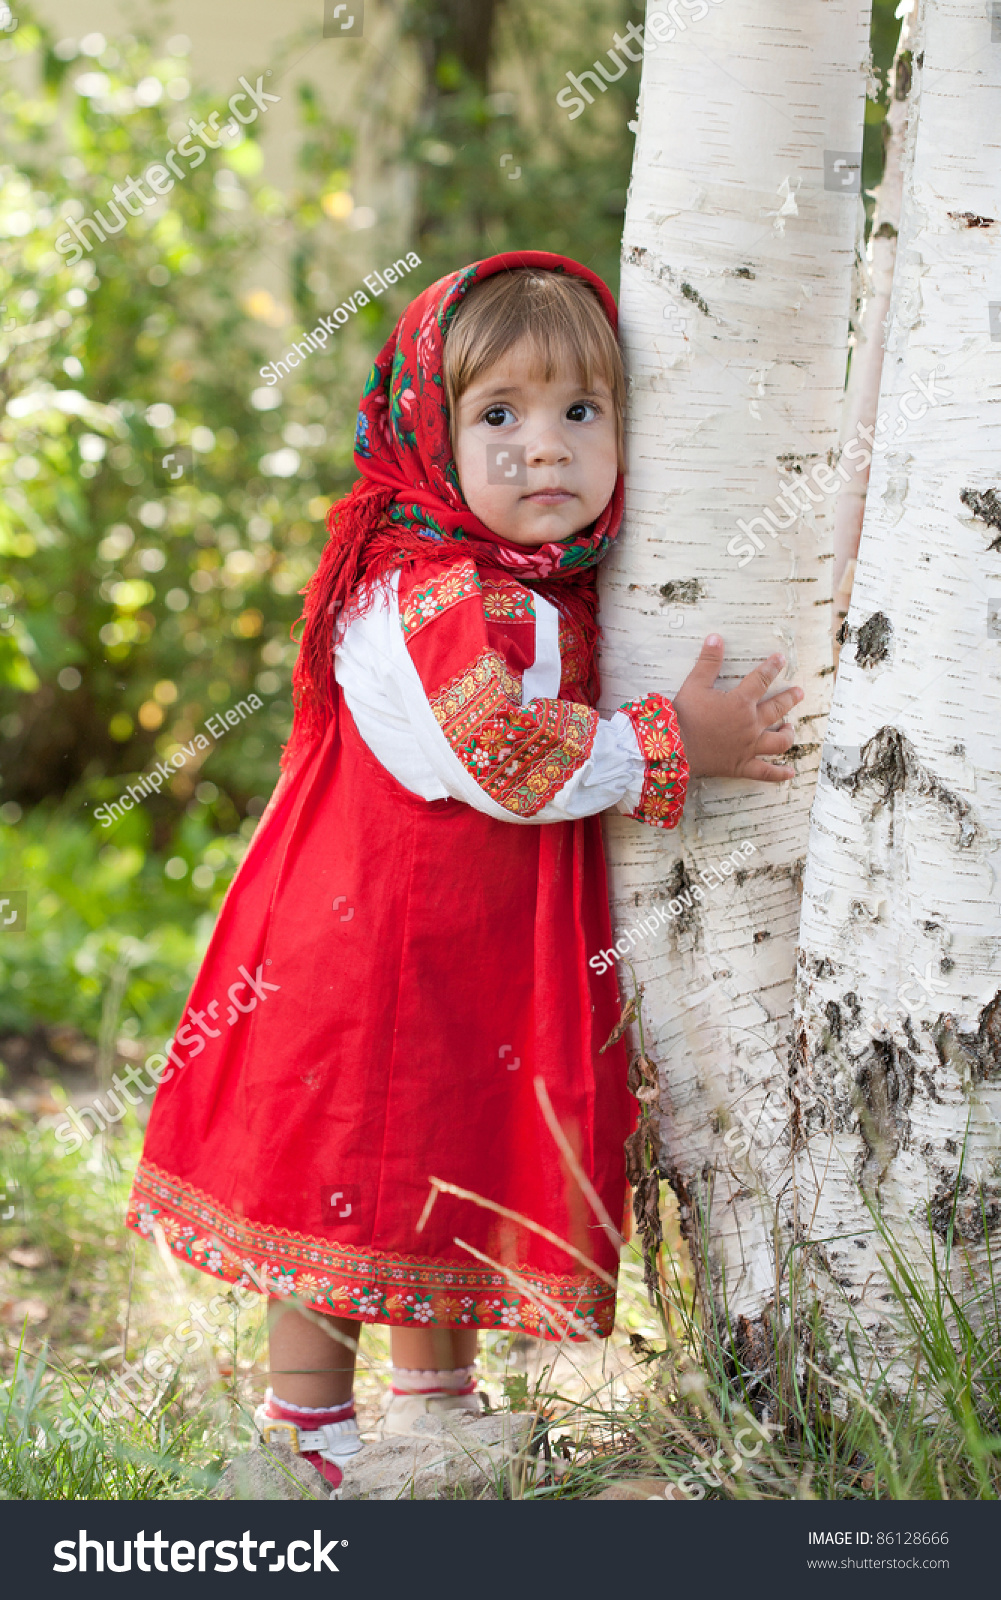 little girl russian traditional dress standing stock photo little girl in russian traditional dress standing next to a birch